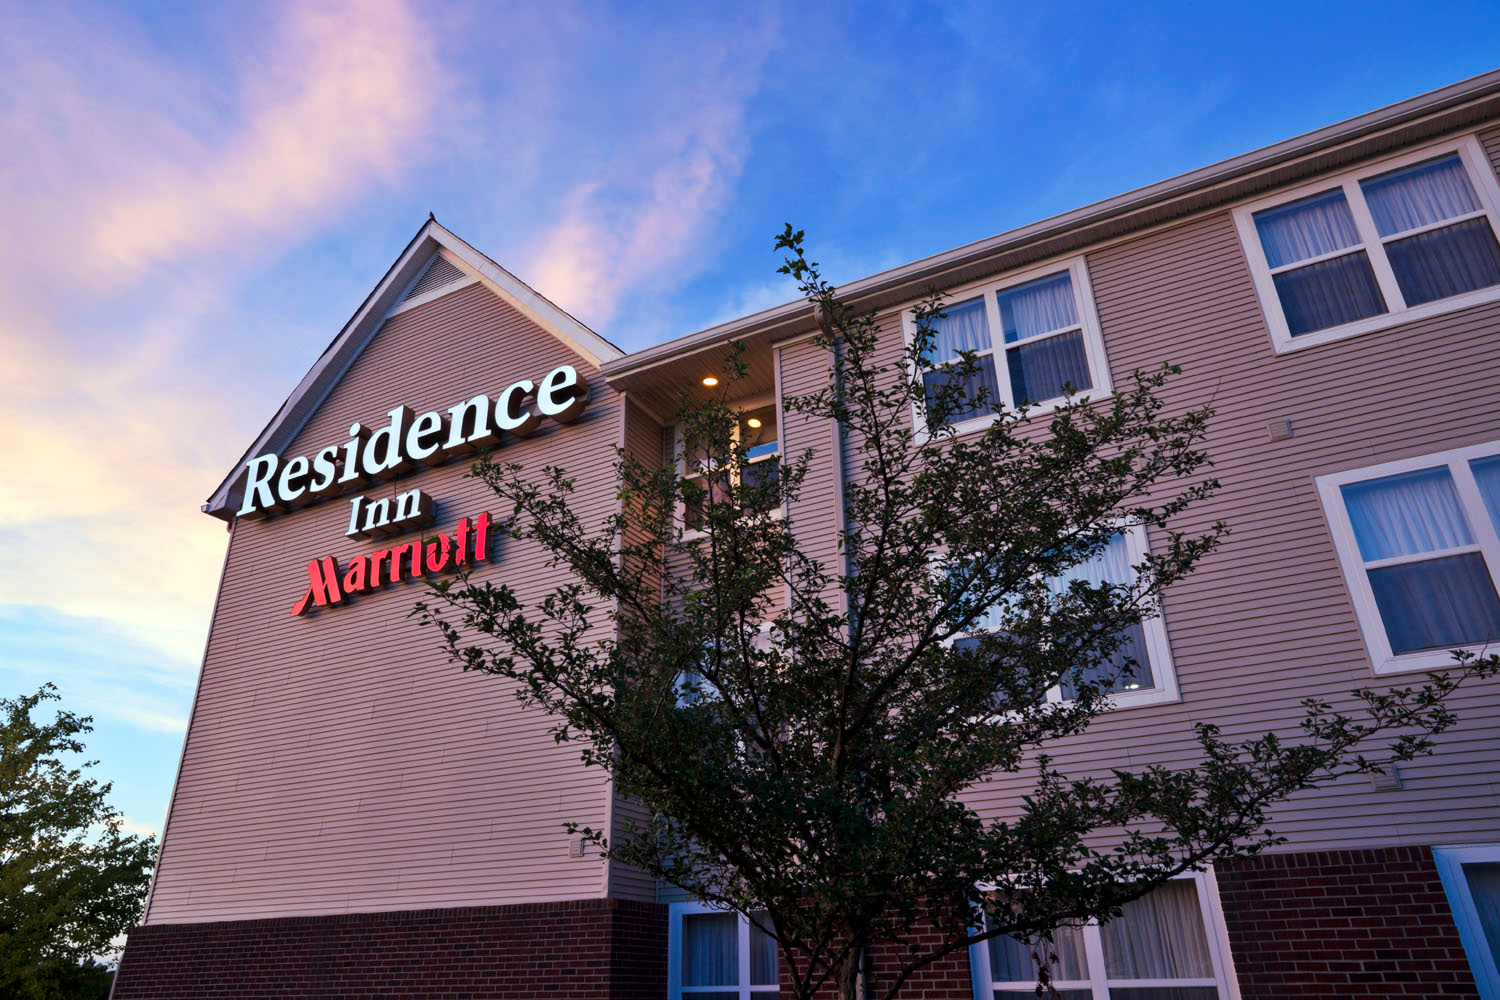 Residence inn coupons and discounts